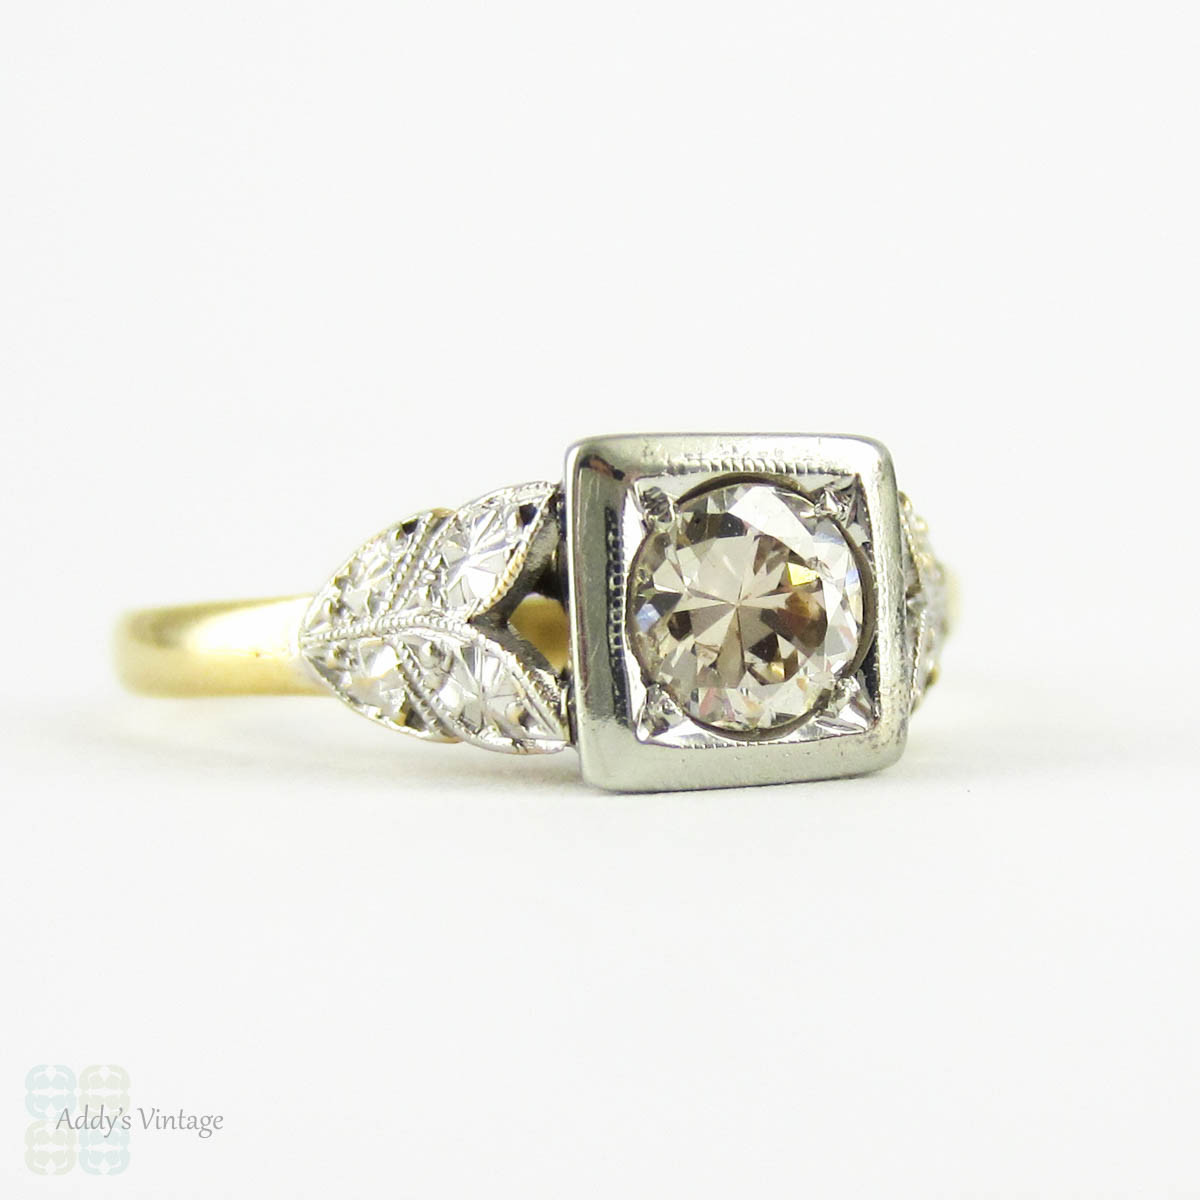 Art Deco Engagement Ring Early Round Brilliant Cut Diamond in Square Setting